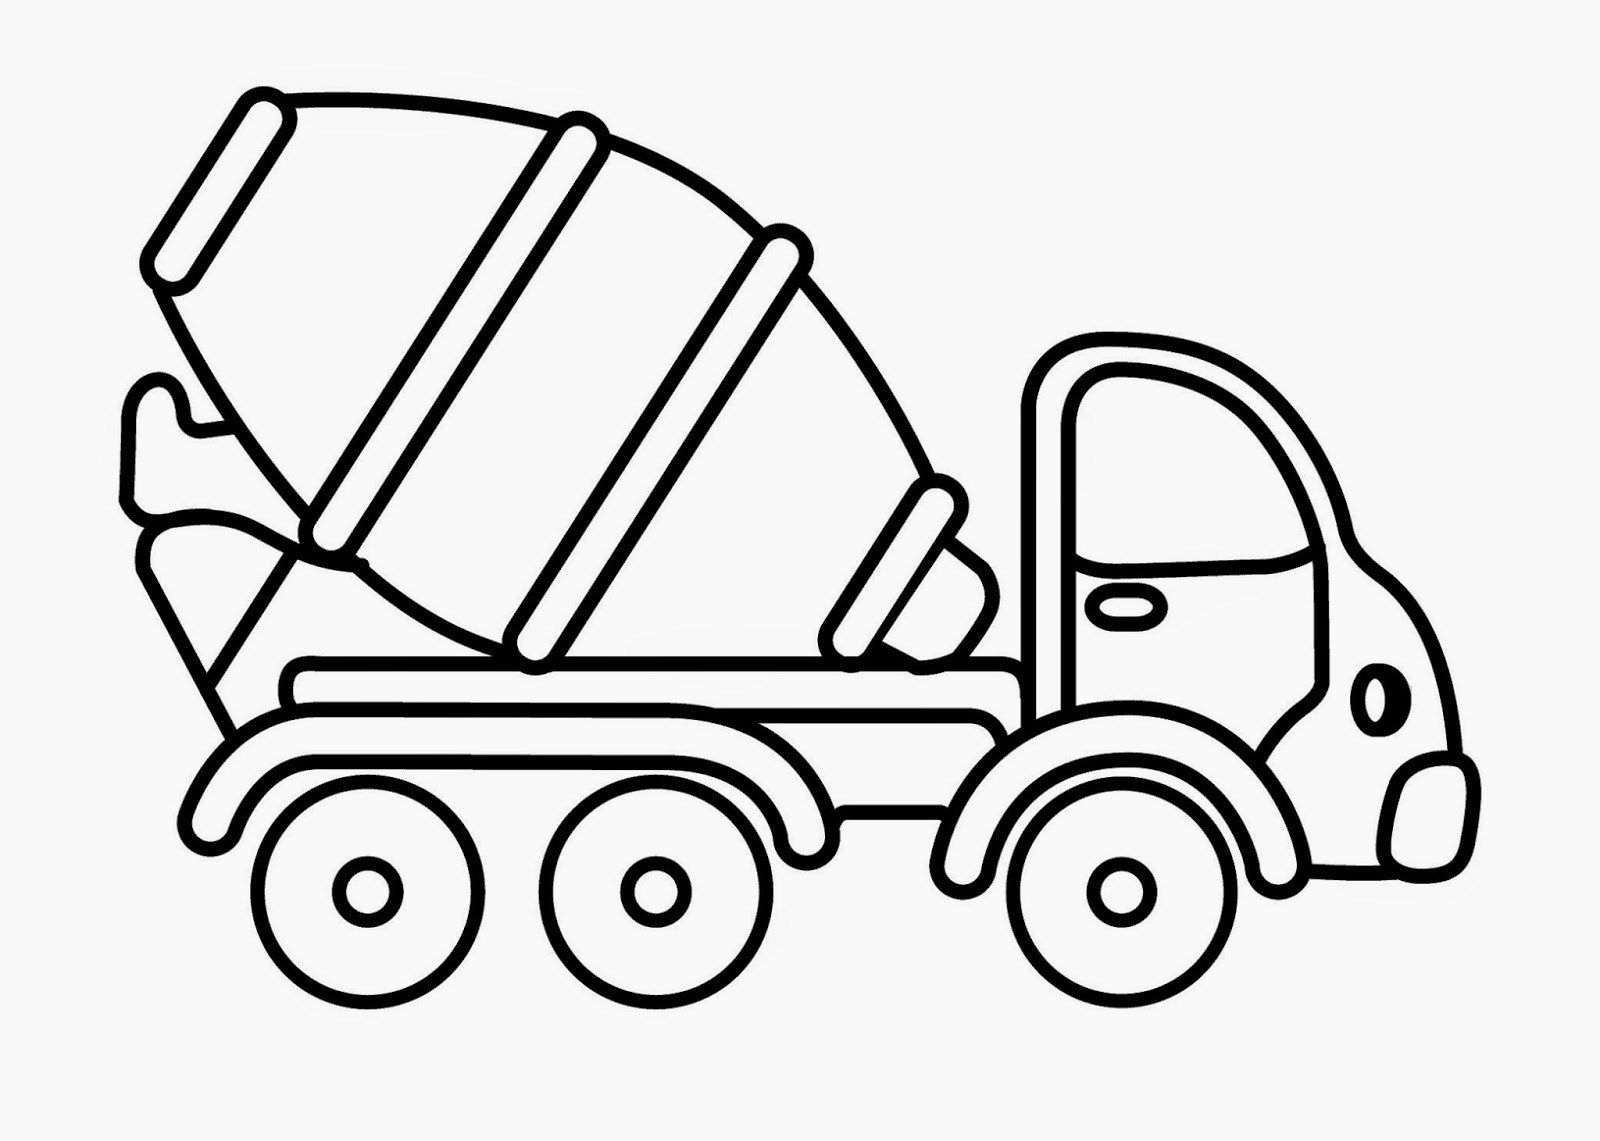 Excavator Coloring Page Best Of Excavator Truck Coloring